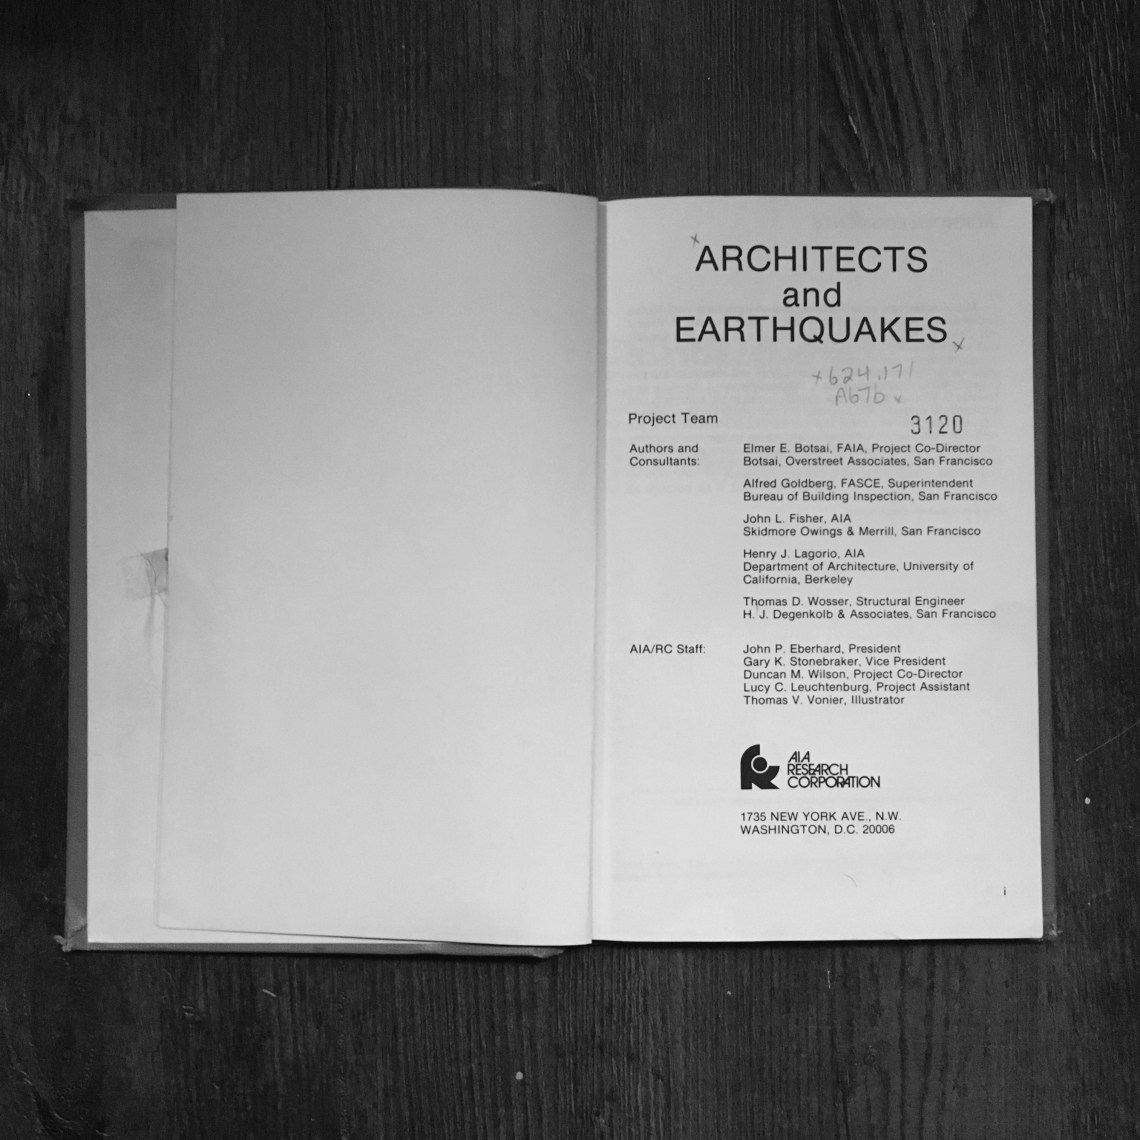 Architects and Earthquakes [cover]